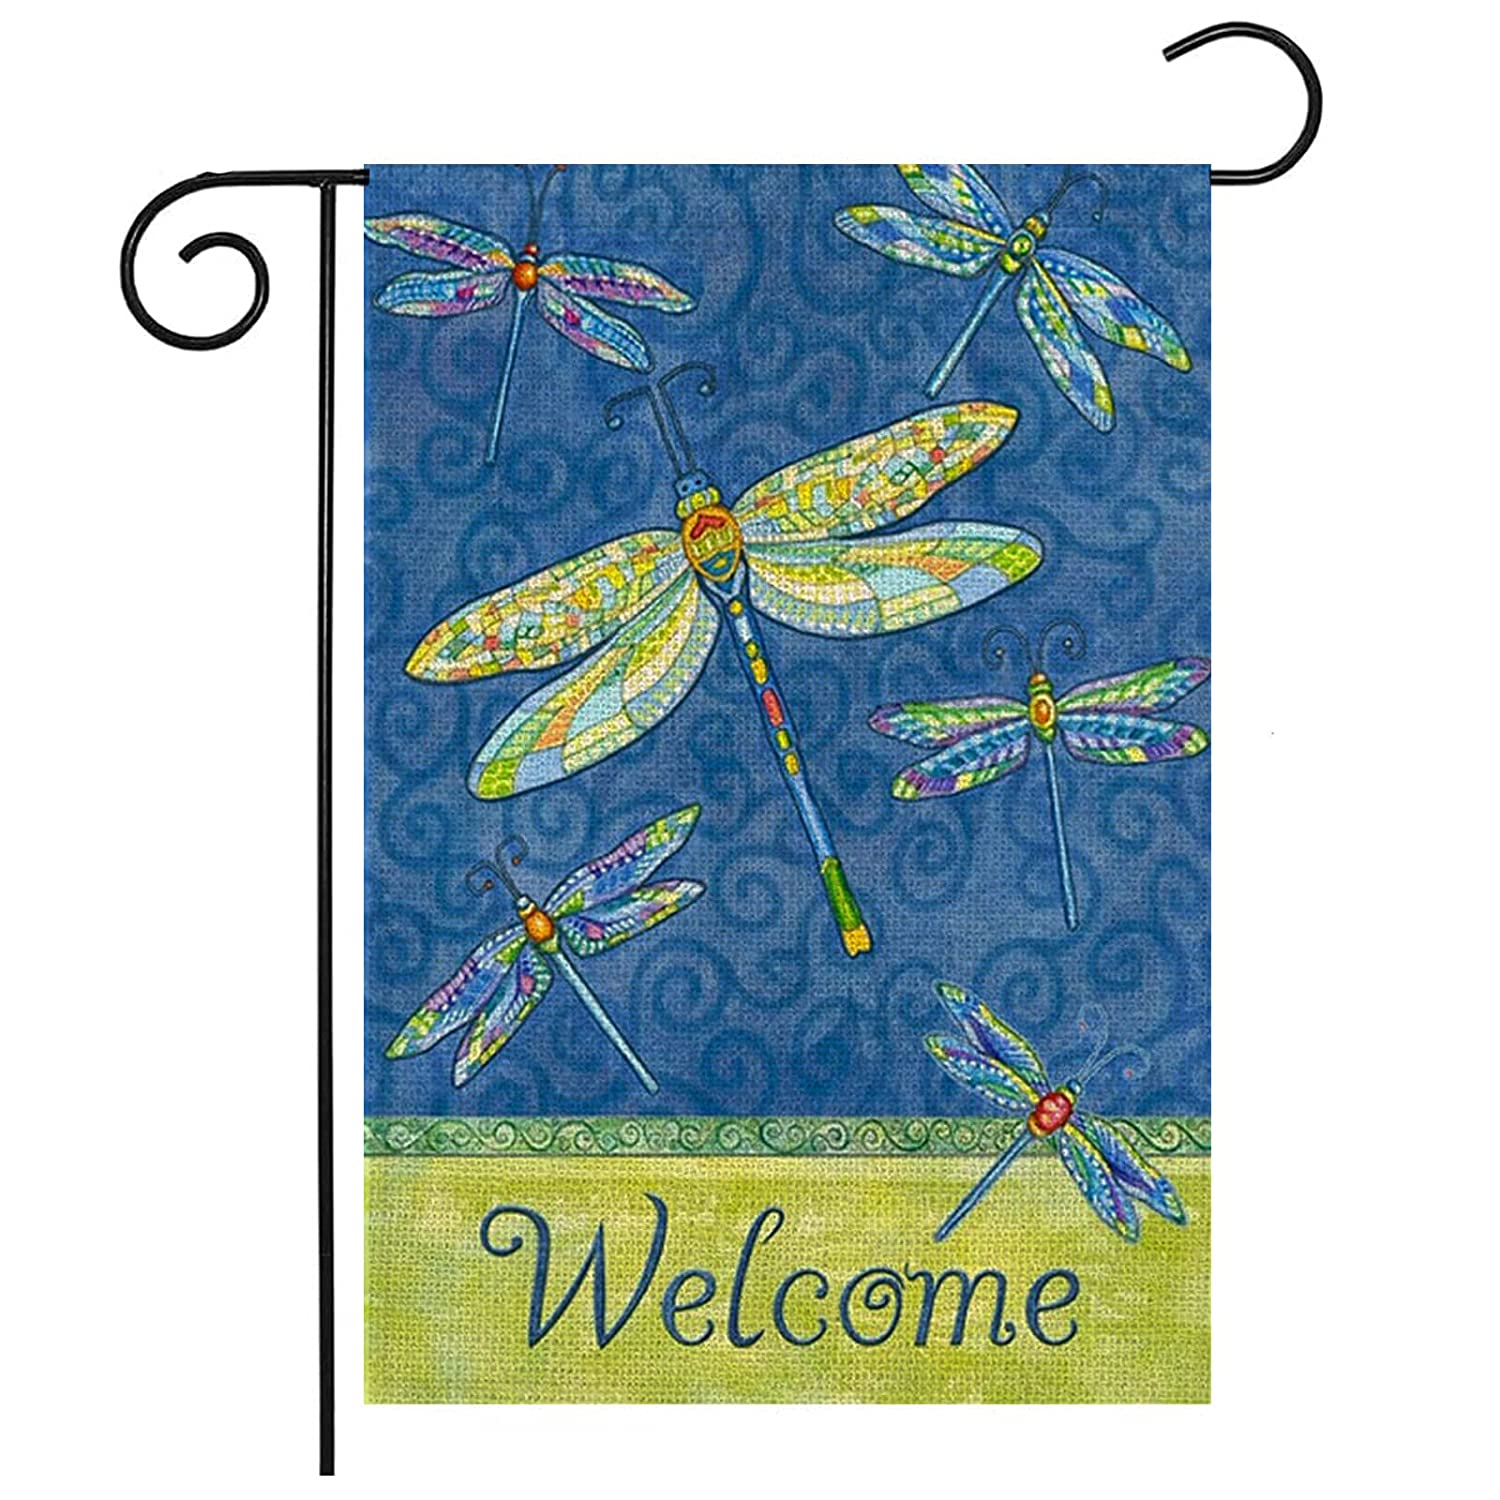 Spring Dragonfly Welcome Garden Flag 12 × 18 inch Double Sided Burlap Welcome House Flag Banners for Patio Lawn Outdoor Yard Farmhouse Home Decor (Dragonfly)